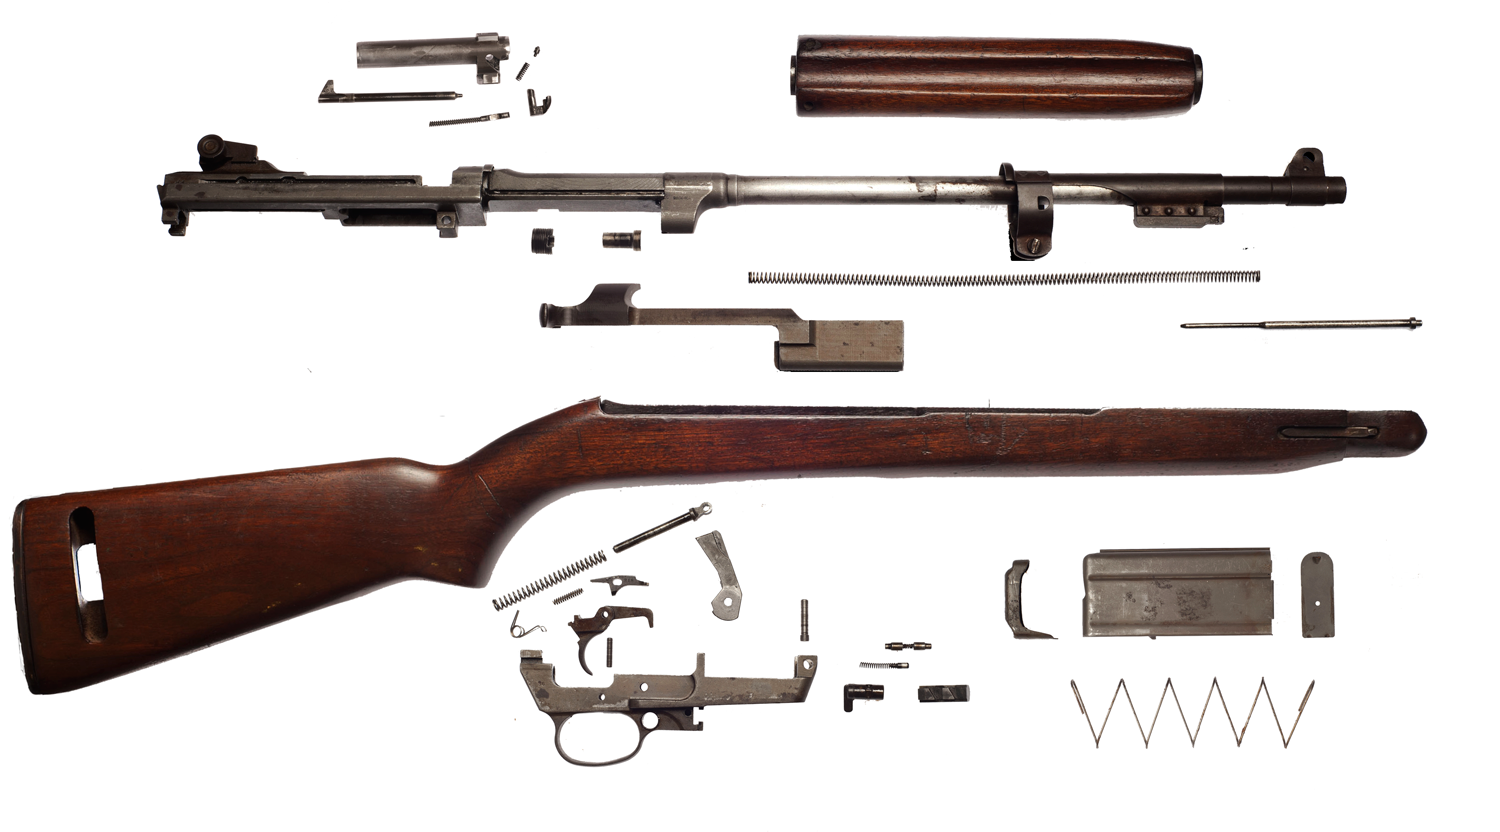 M1 Carbine Pics, Weapons Collection